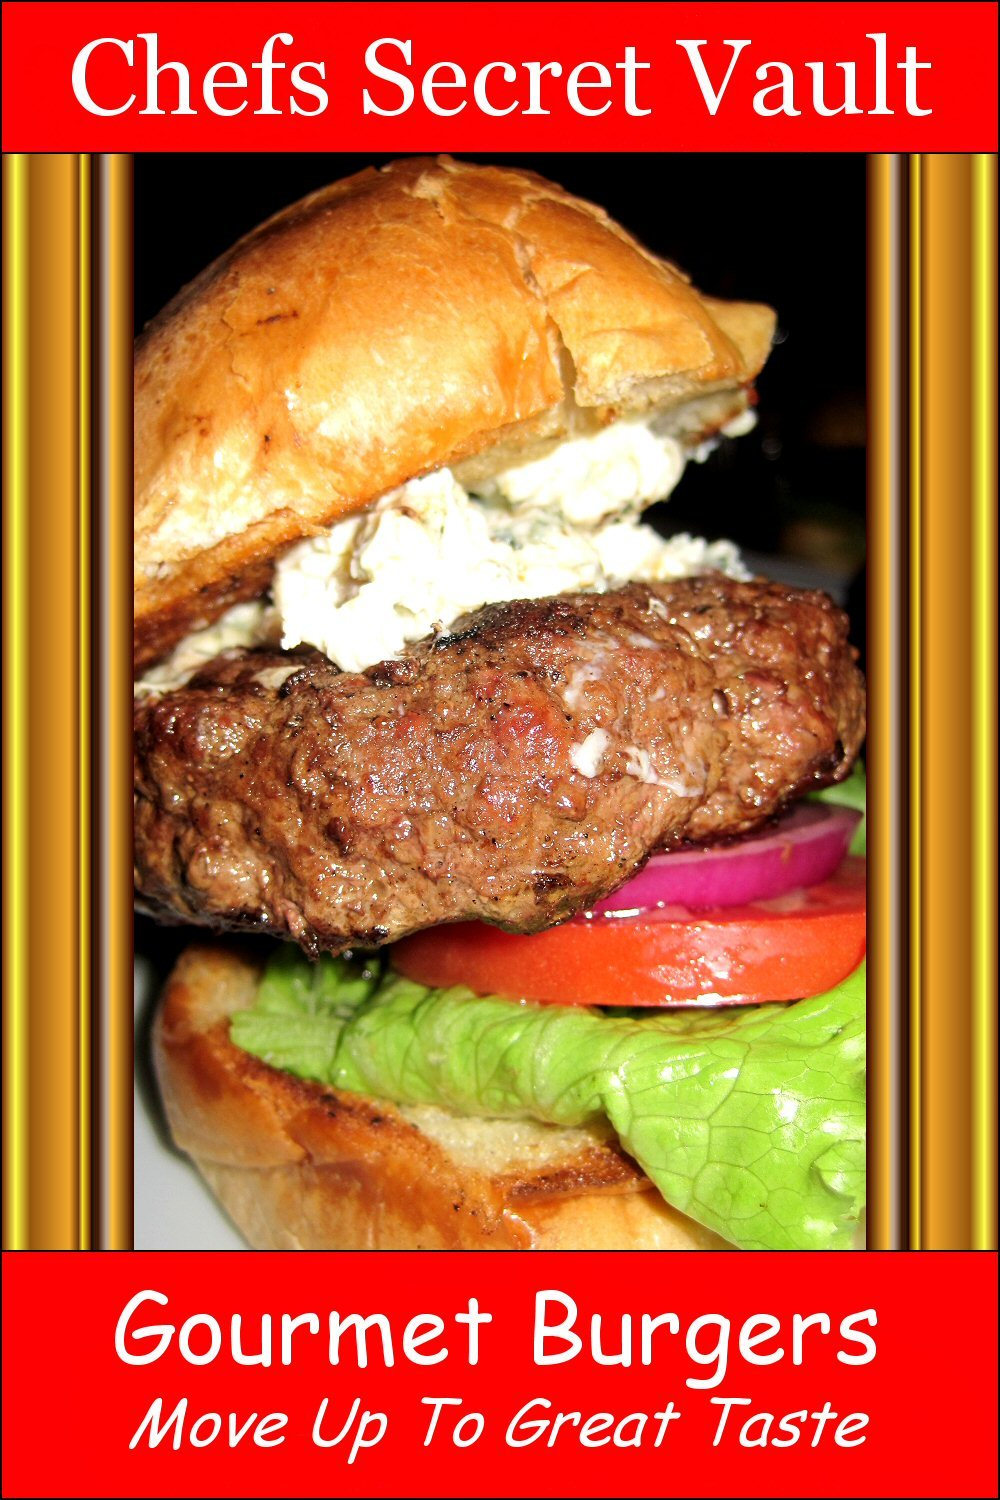 Gourmet Burgers: Move Up To Great Taste By: Chefs Secret Vault